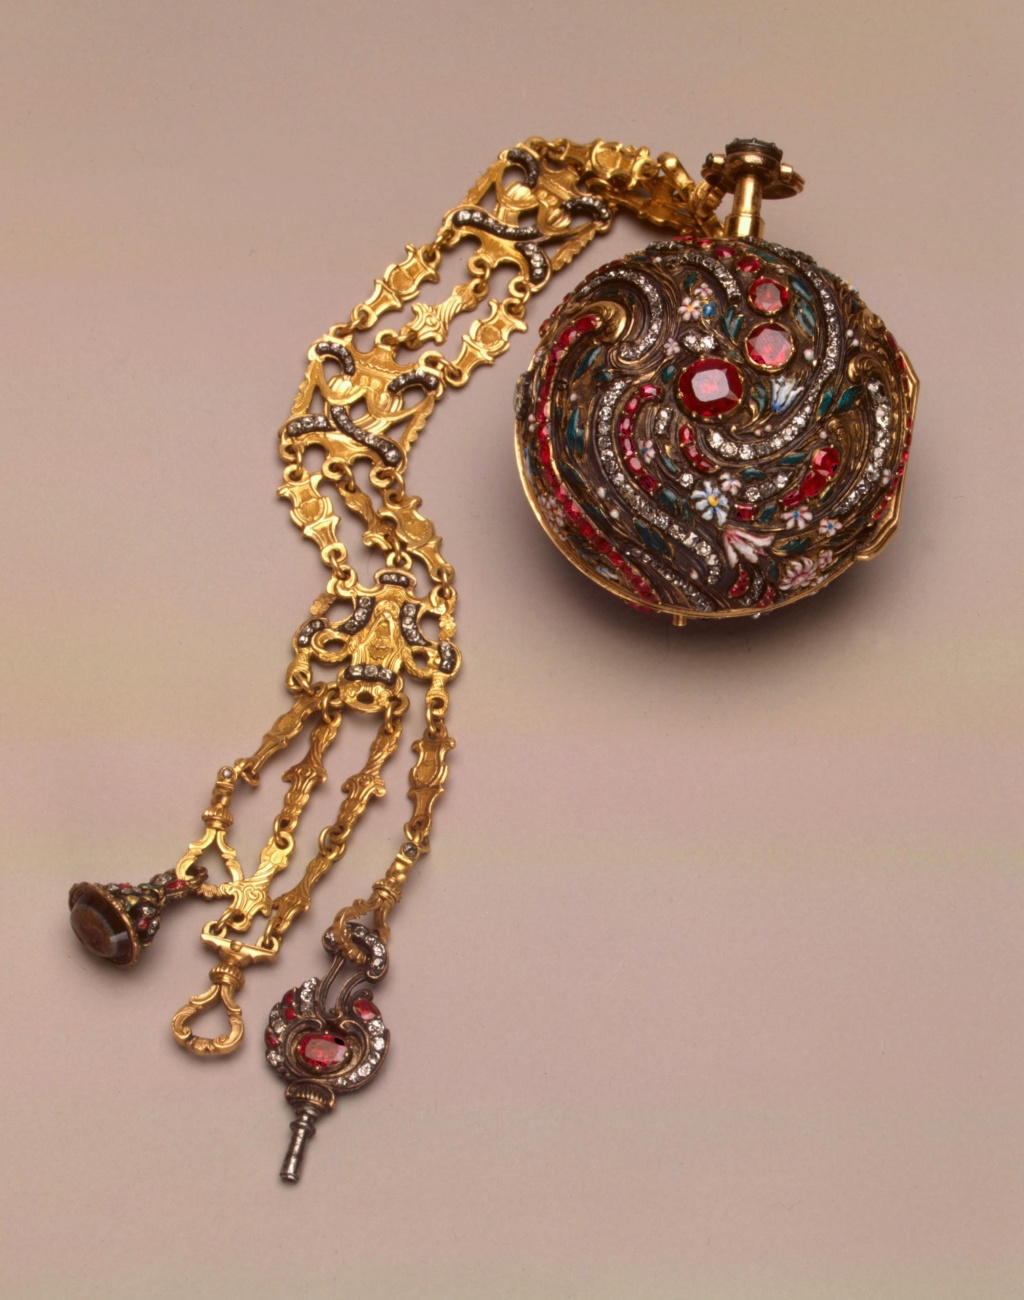 Exposition : Jewels ! Glittering at the Russian Court, Hermitage Amsterdam Woa_im80